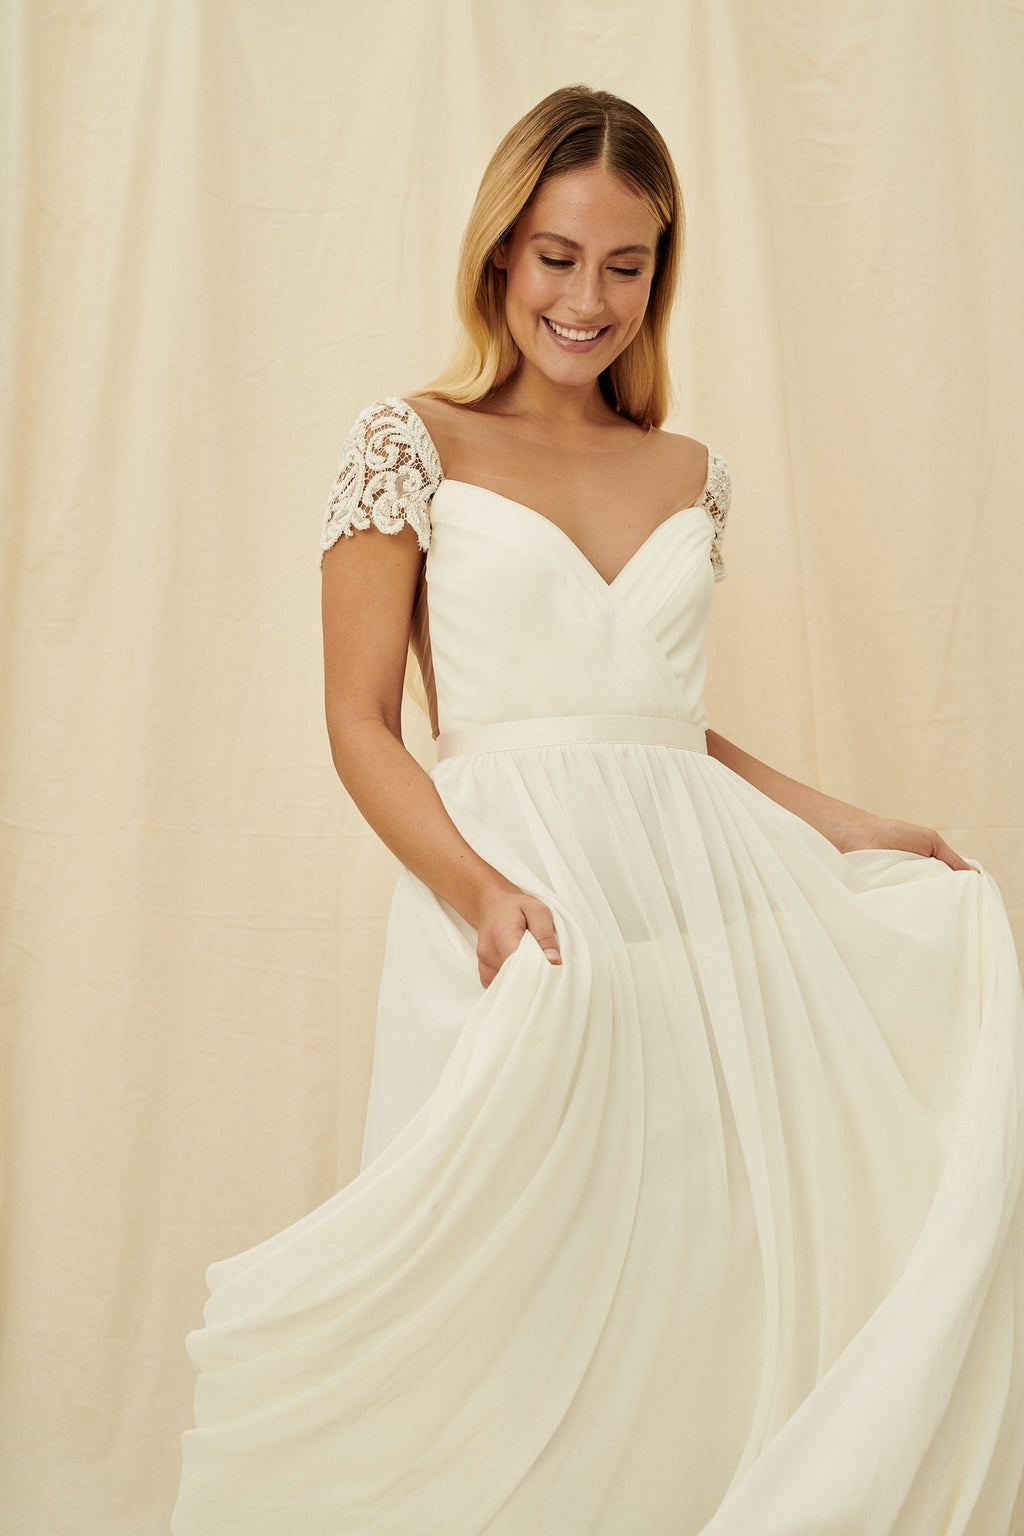 A romantic wedding dress with an illusion back and beaded lace cap sleeves by Truvelle